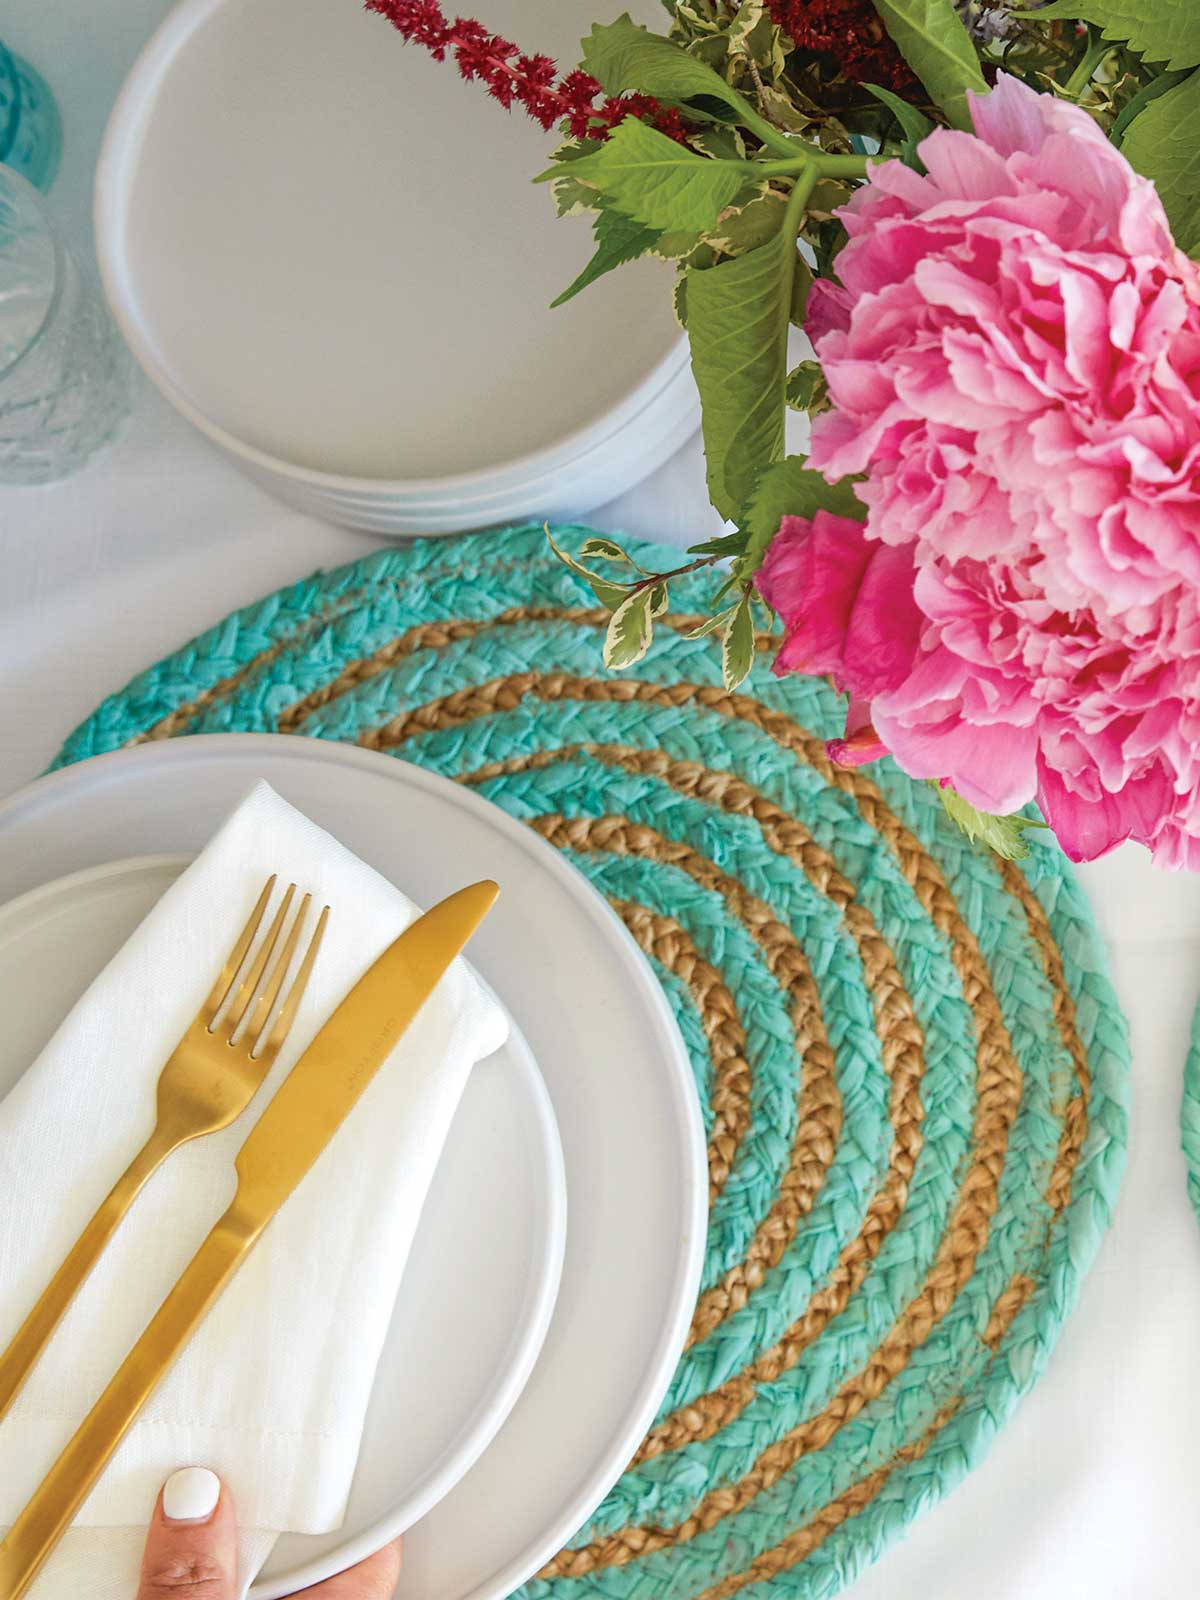 MALIBU WOVEN PLACEMATS (SET OF 4) - MINT